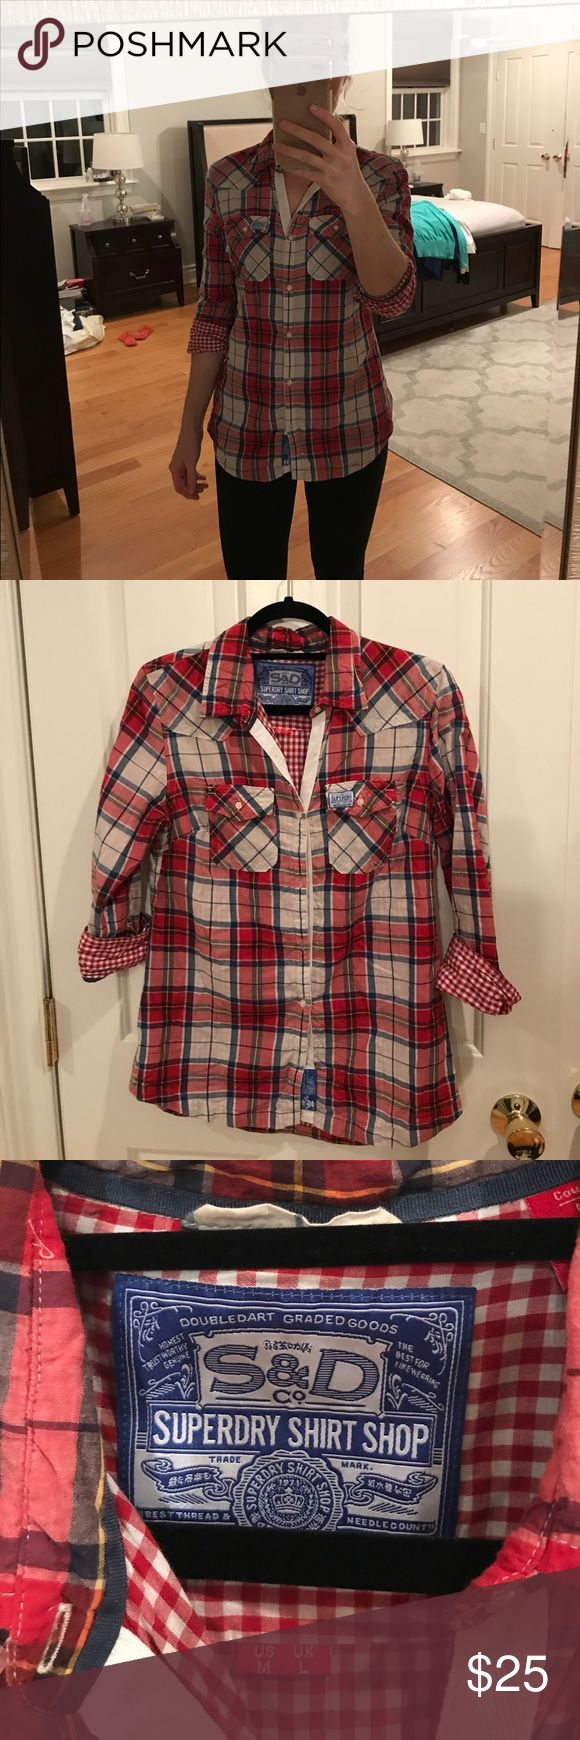 Selling this Super Dry plaid button down. on Poshmark! My username is: mchristine14. #shopmycloset #poshmark #fashion #shopping #style #forsale #Superdry #Tops